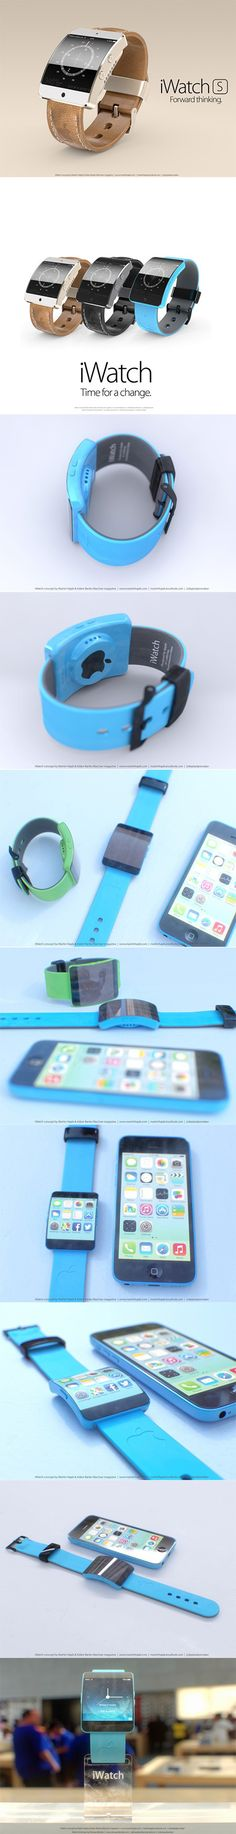 10 Incredible Pictures of Apple's Upcoming iWatch S